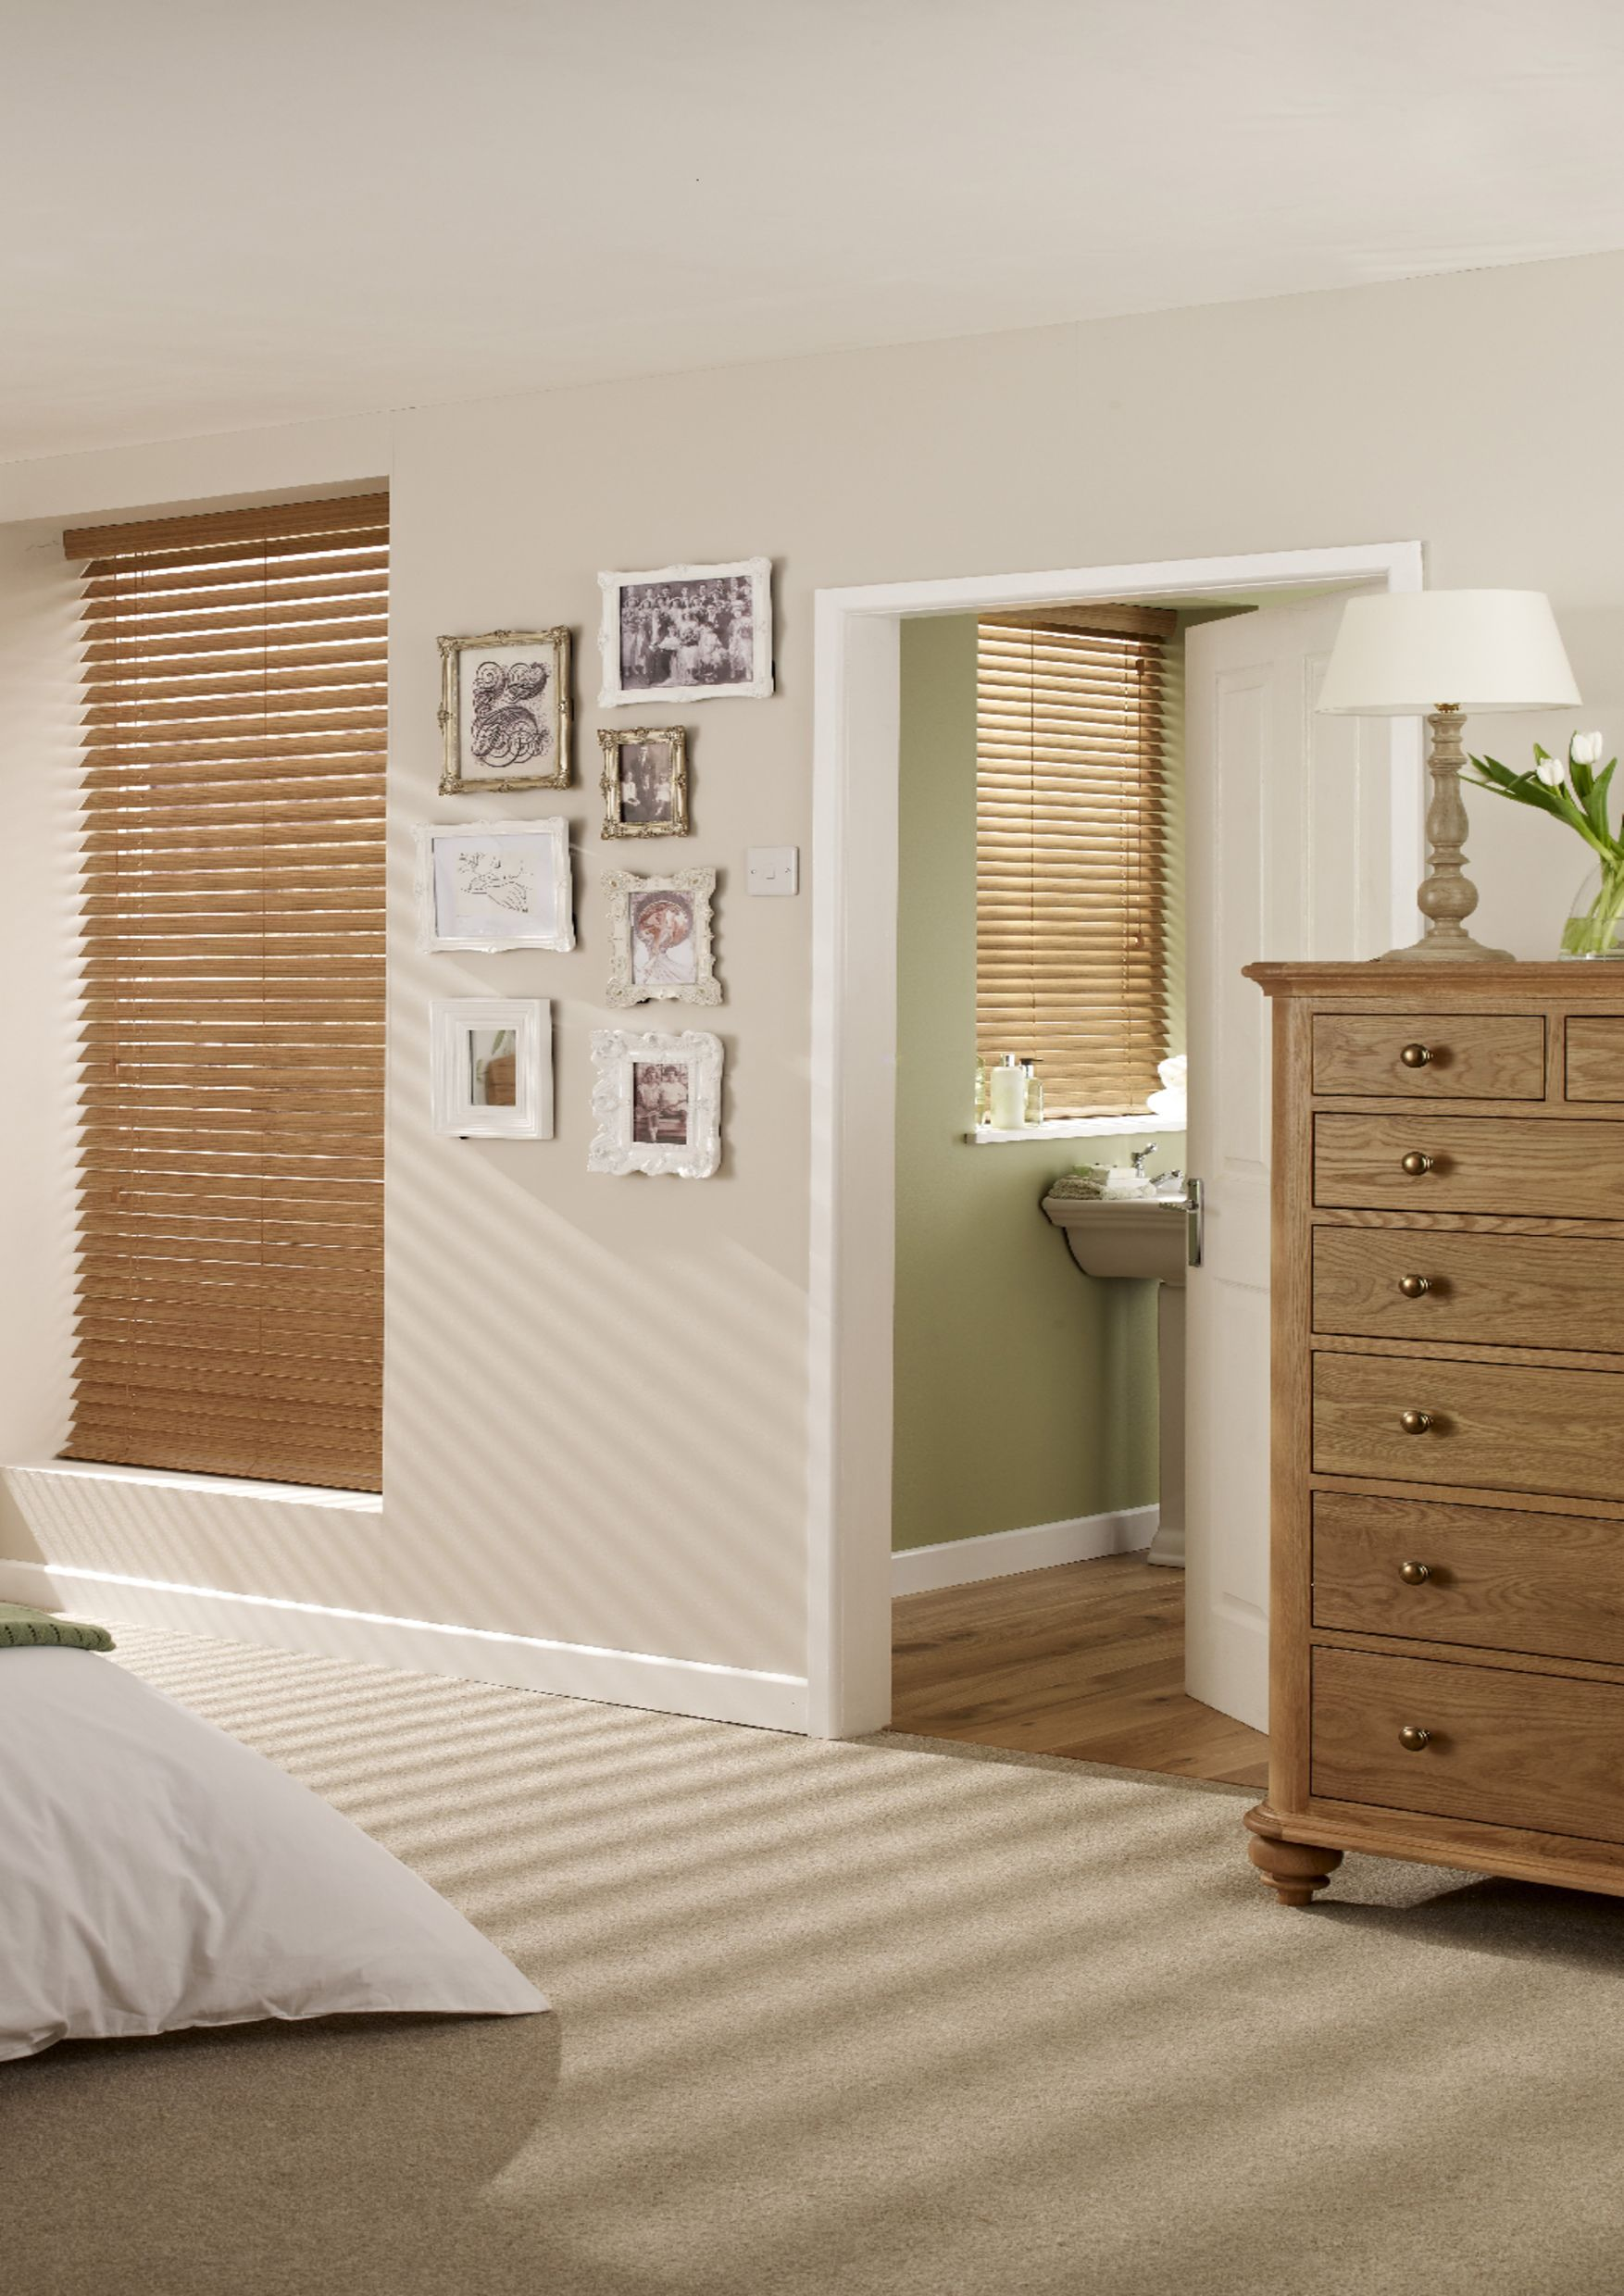 Oakwood Interiors Bedroom Furniture Oakwood Wood Venetian Blinds For Your Bedroom From Hillarys Find